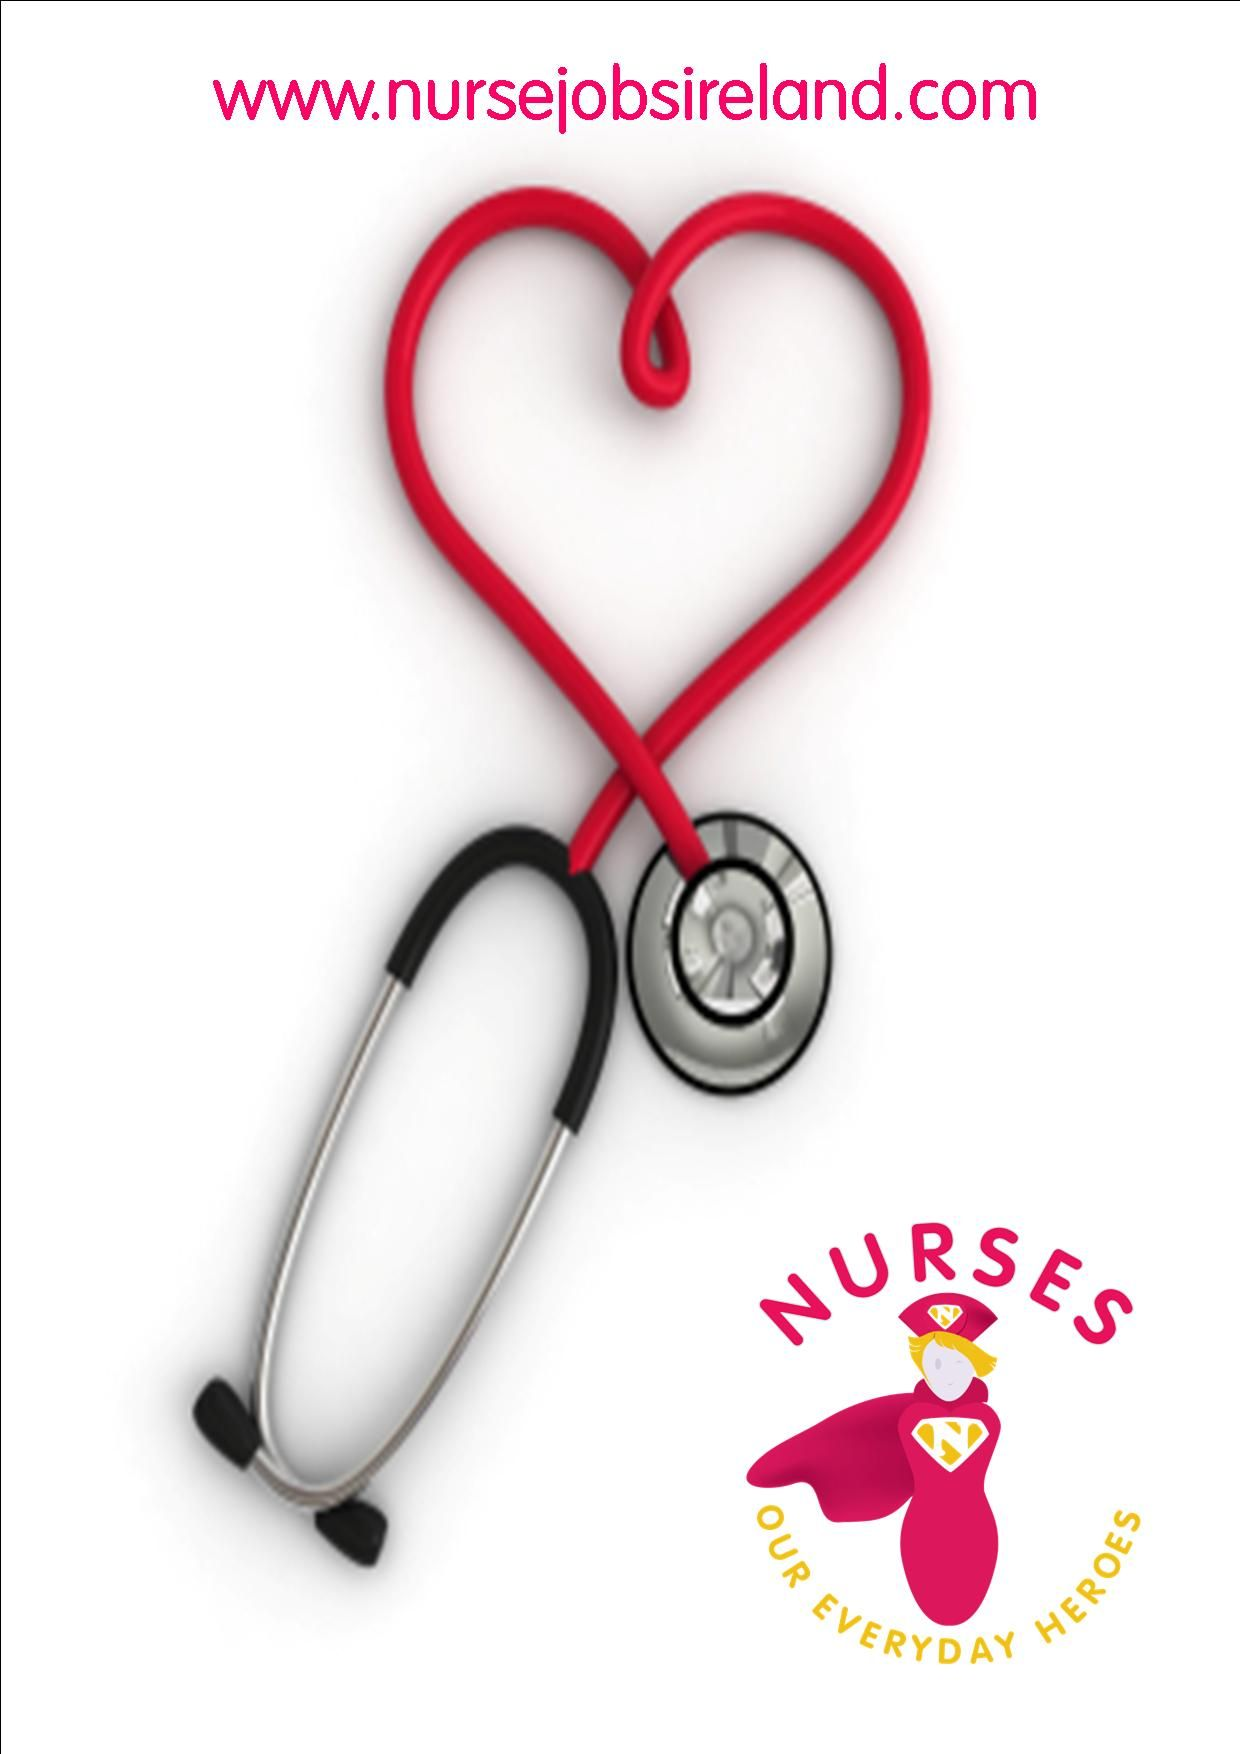 Are you considering nurse training in the new year